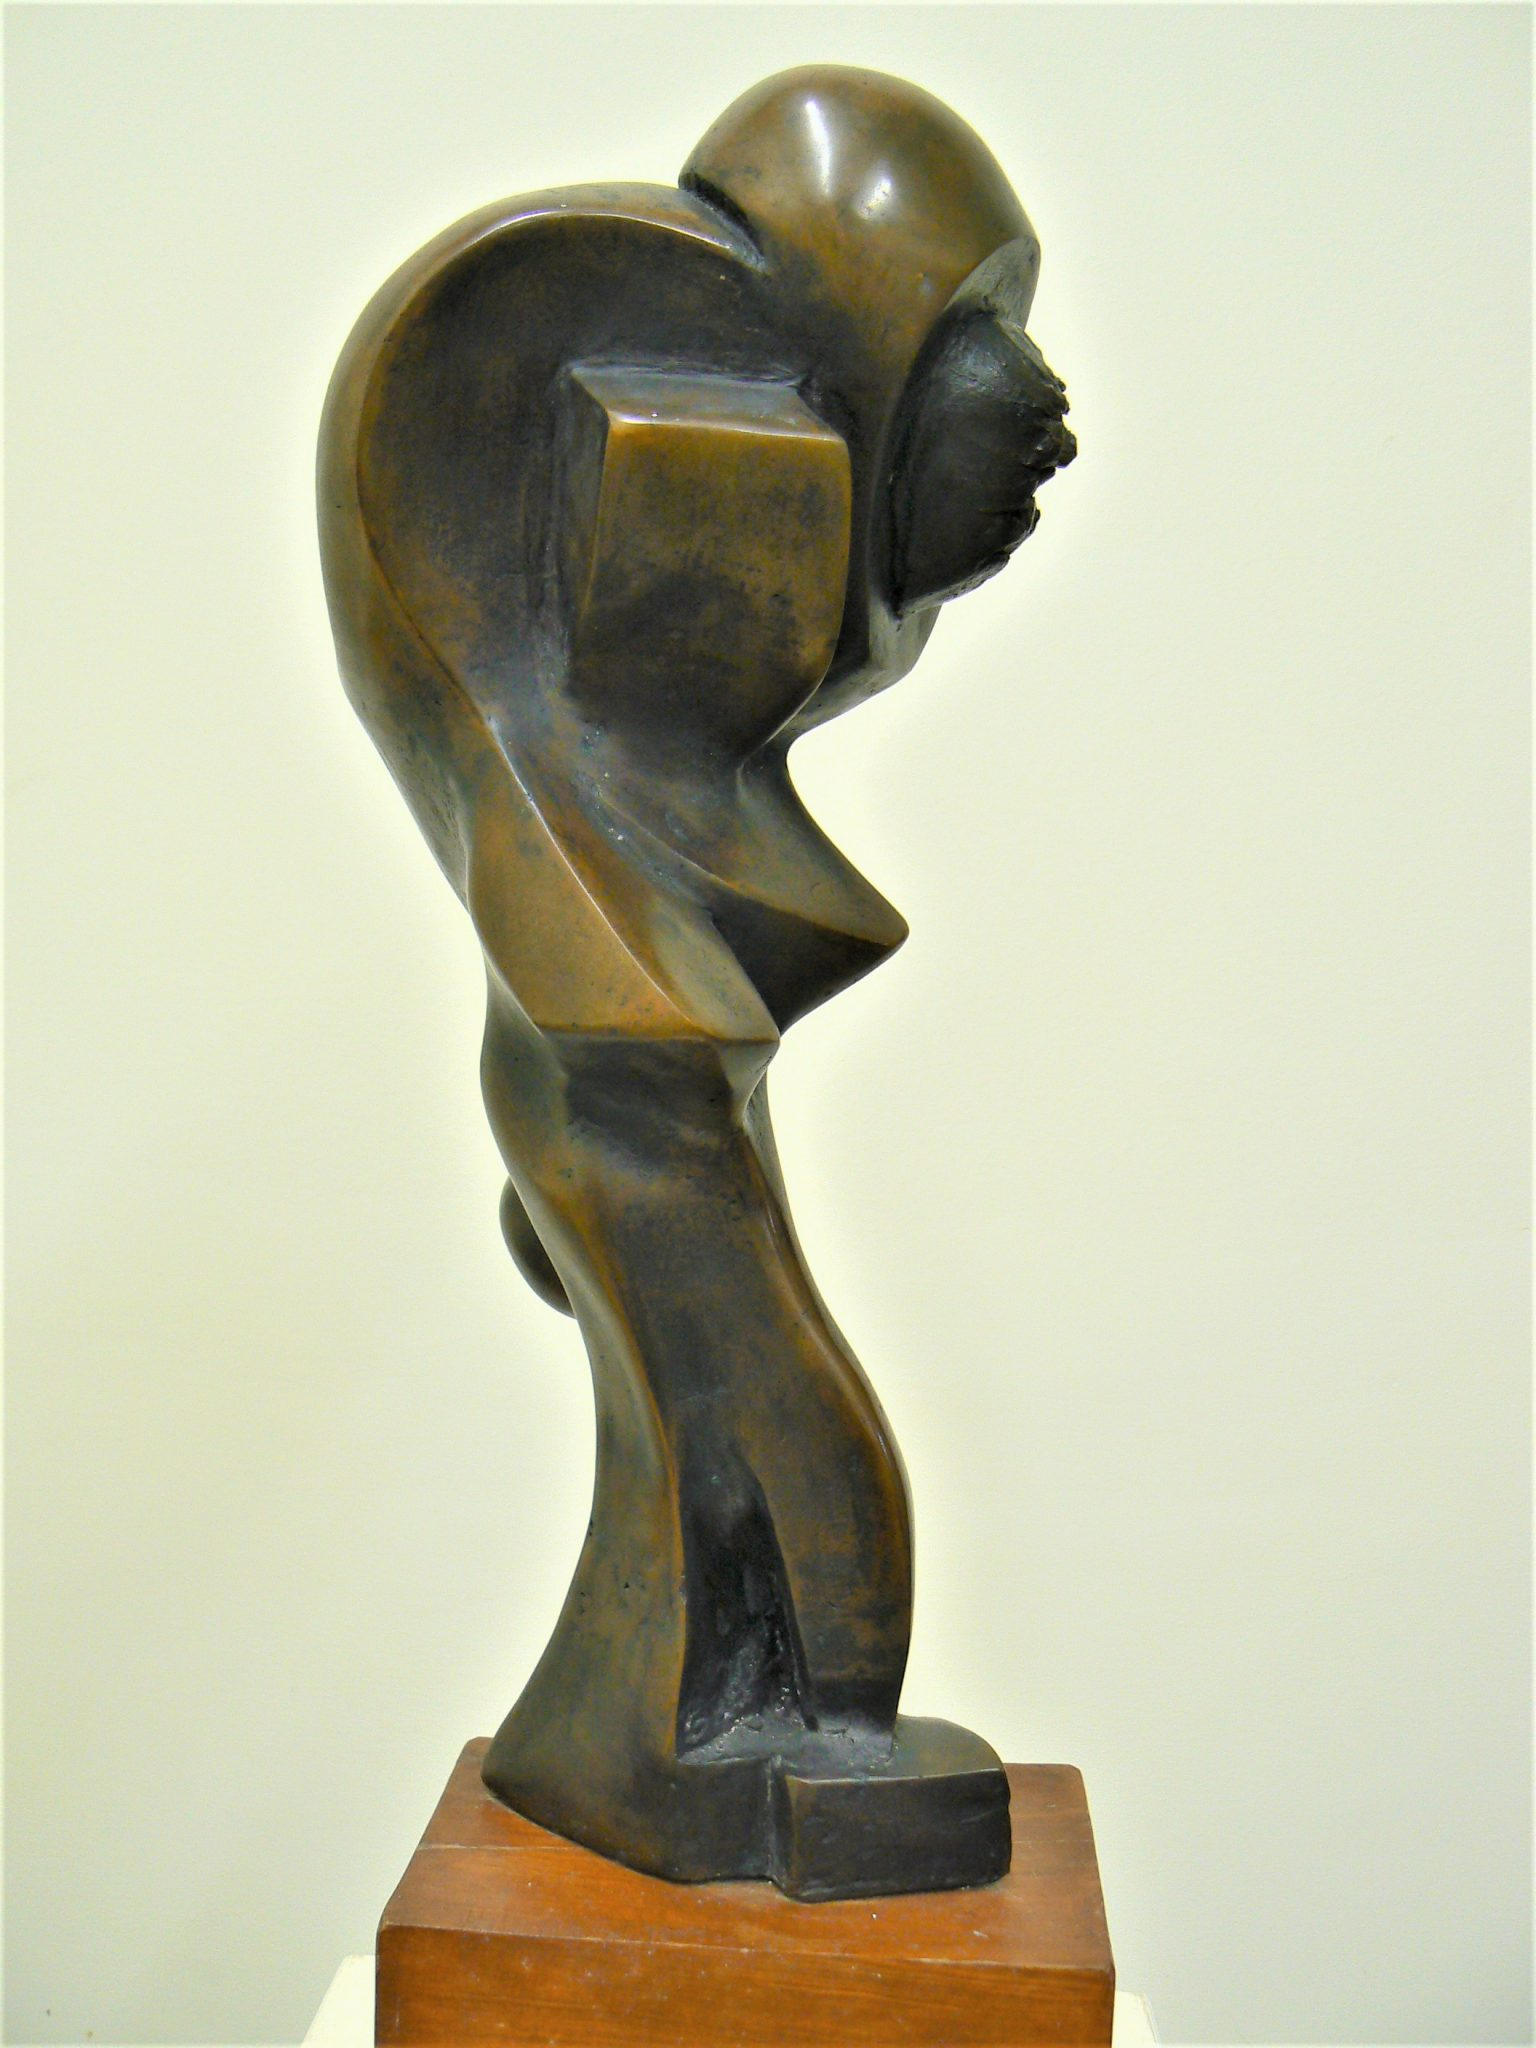 Polite, cast bronze on pecan, Abstract sculpture for sale